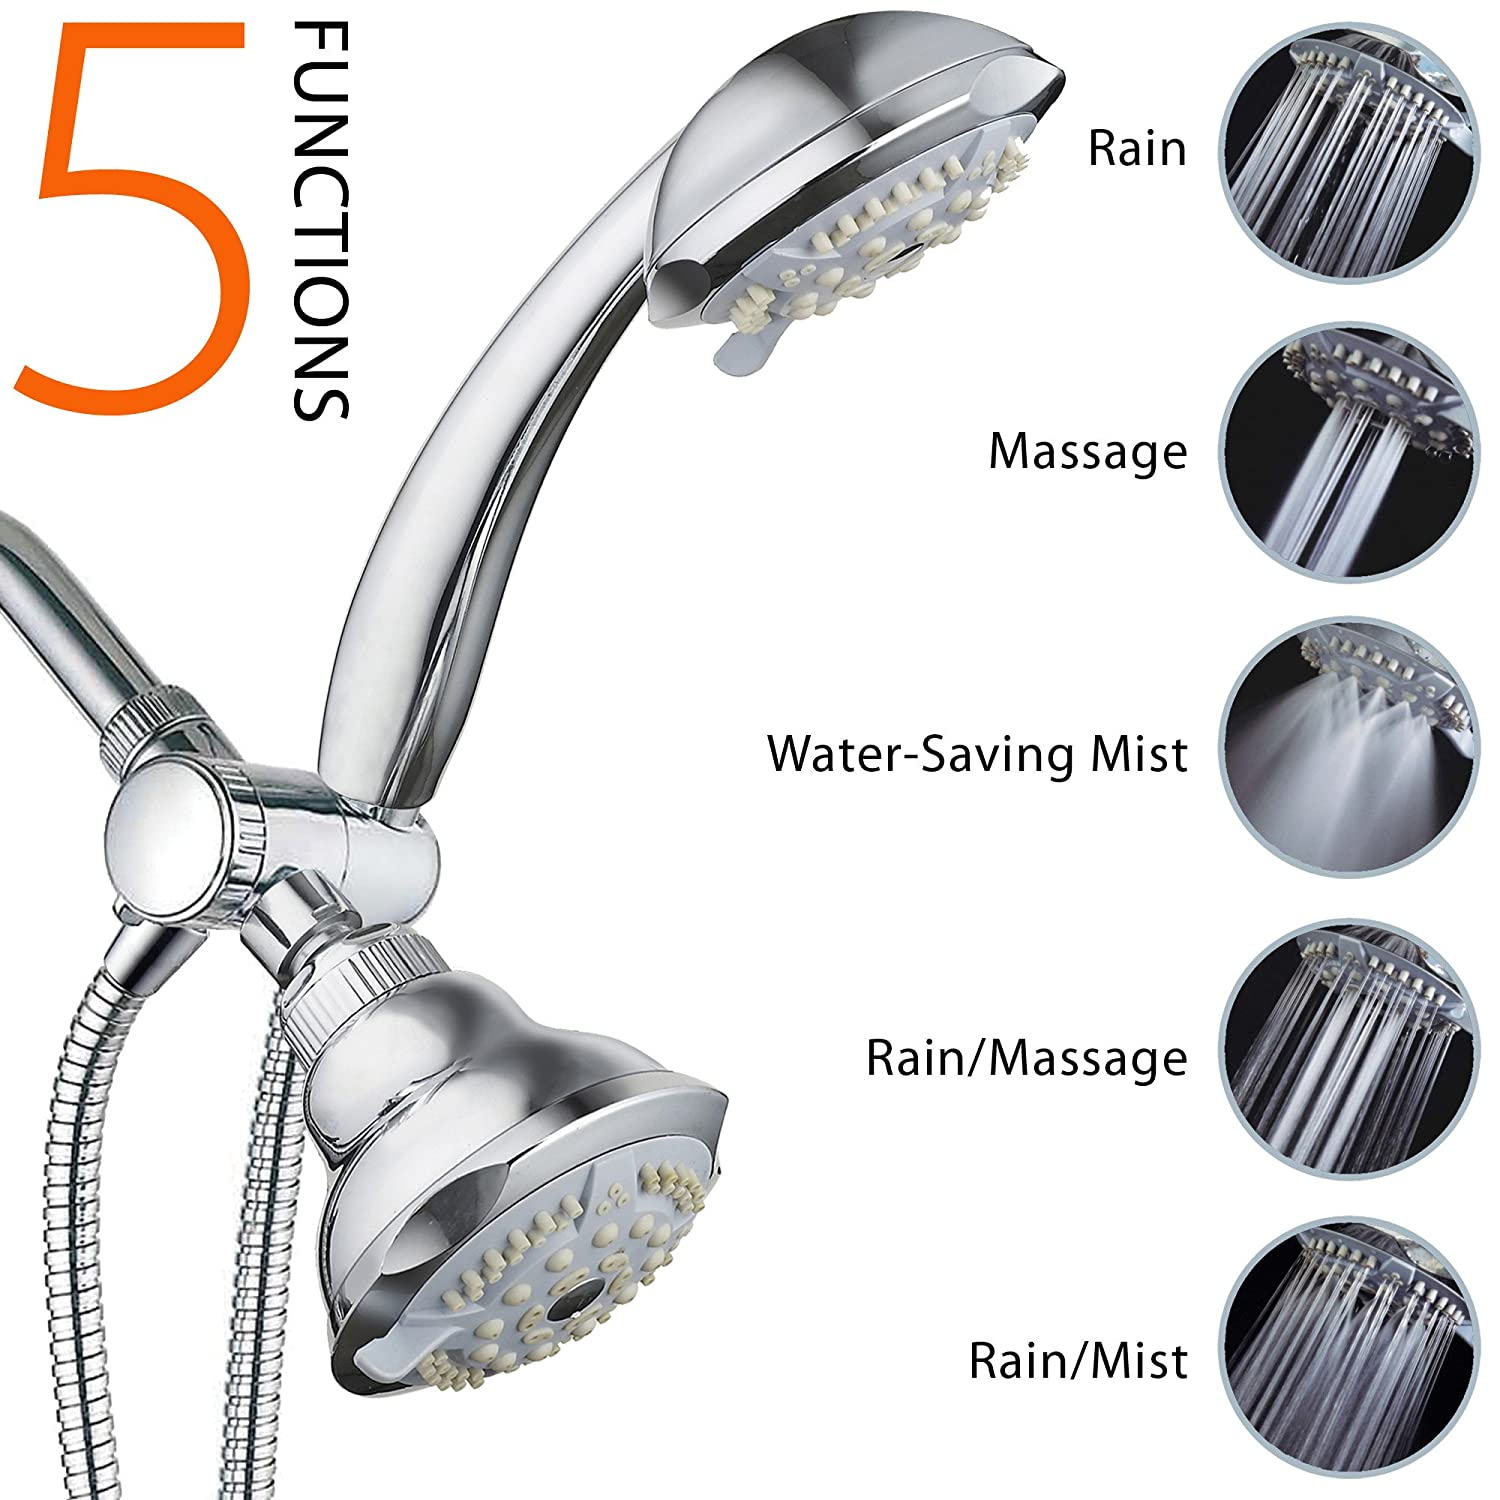 DreamSpa 19-setting 3-way 2 in 1 Luxury Shower Combo - - Amazon.com